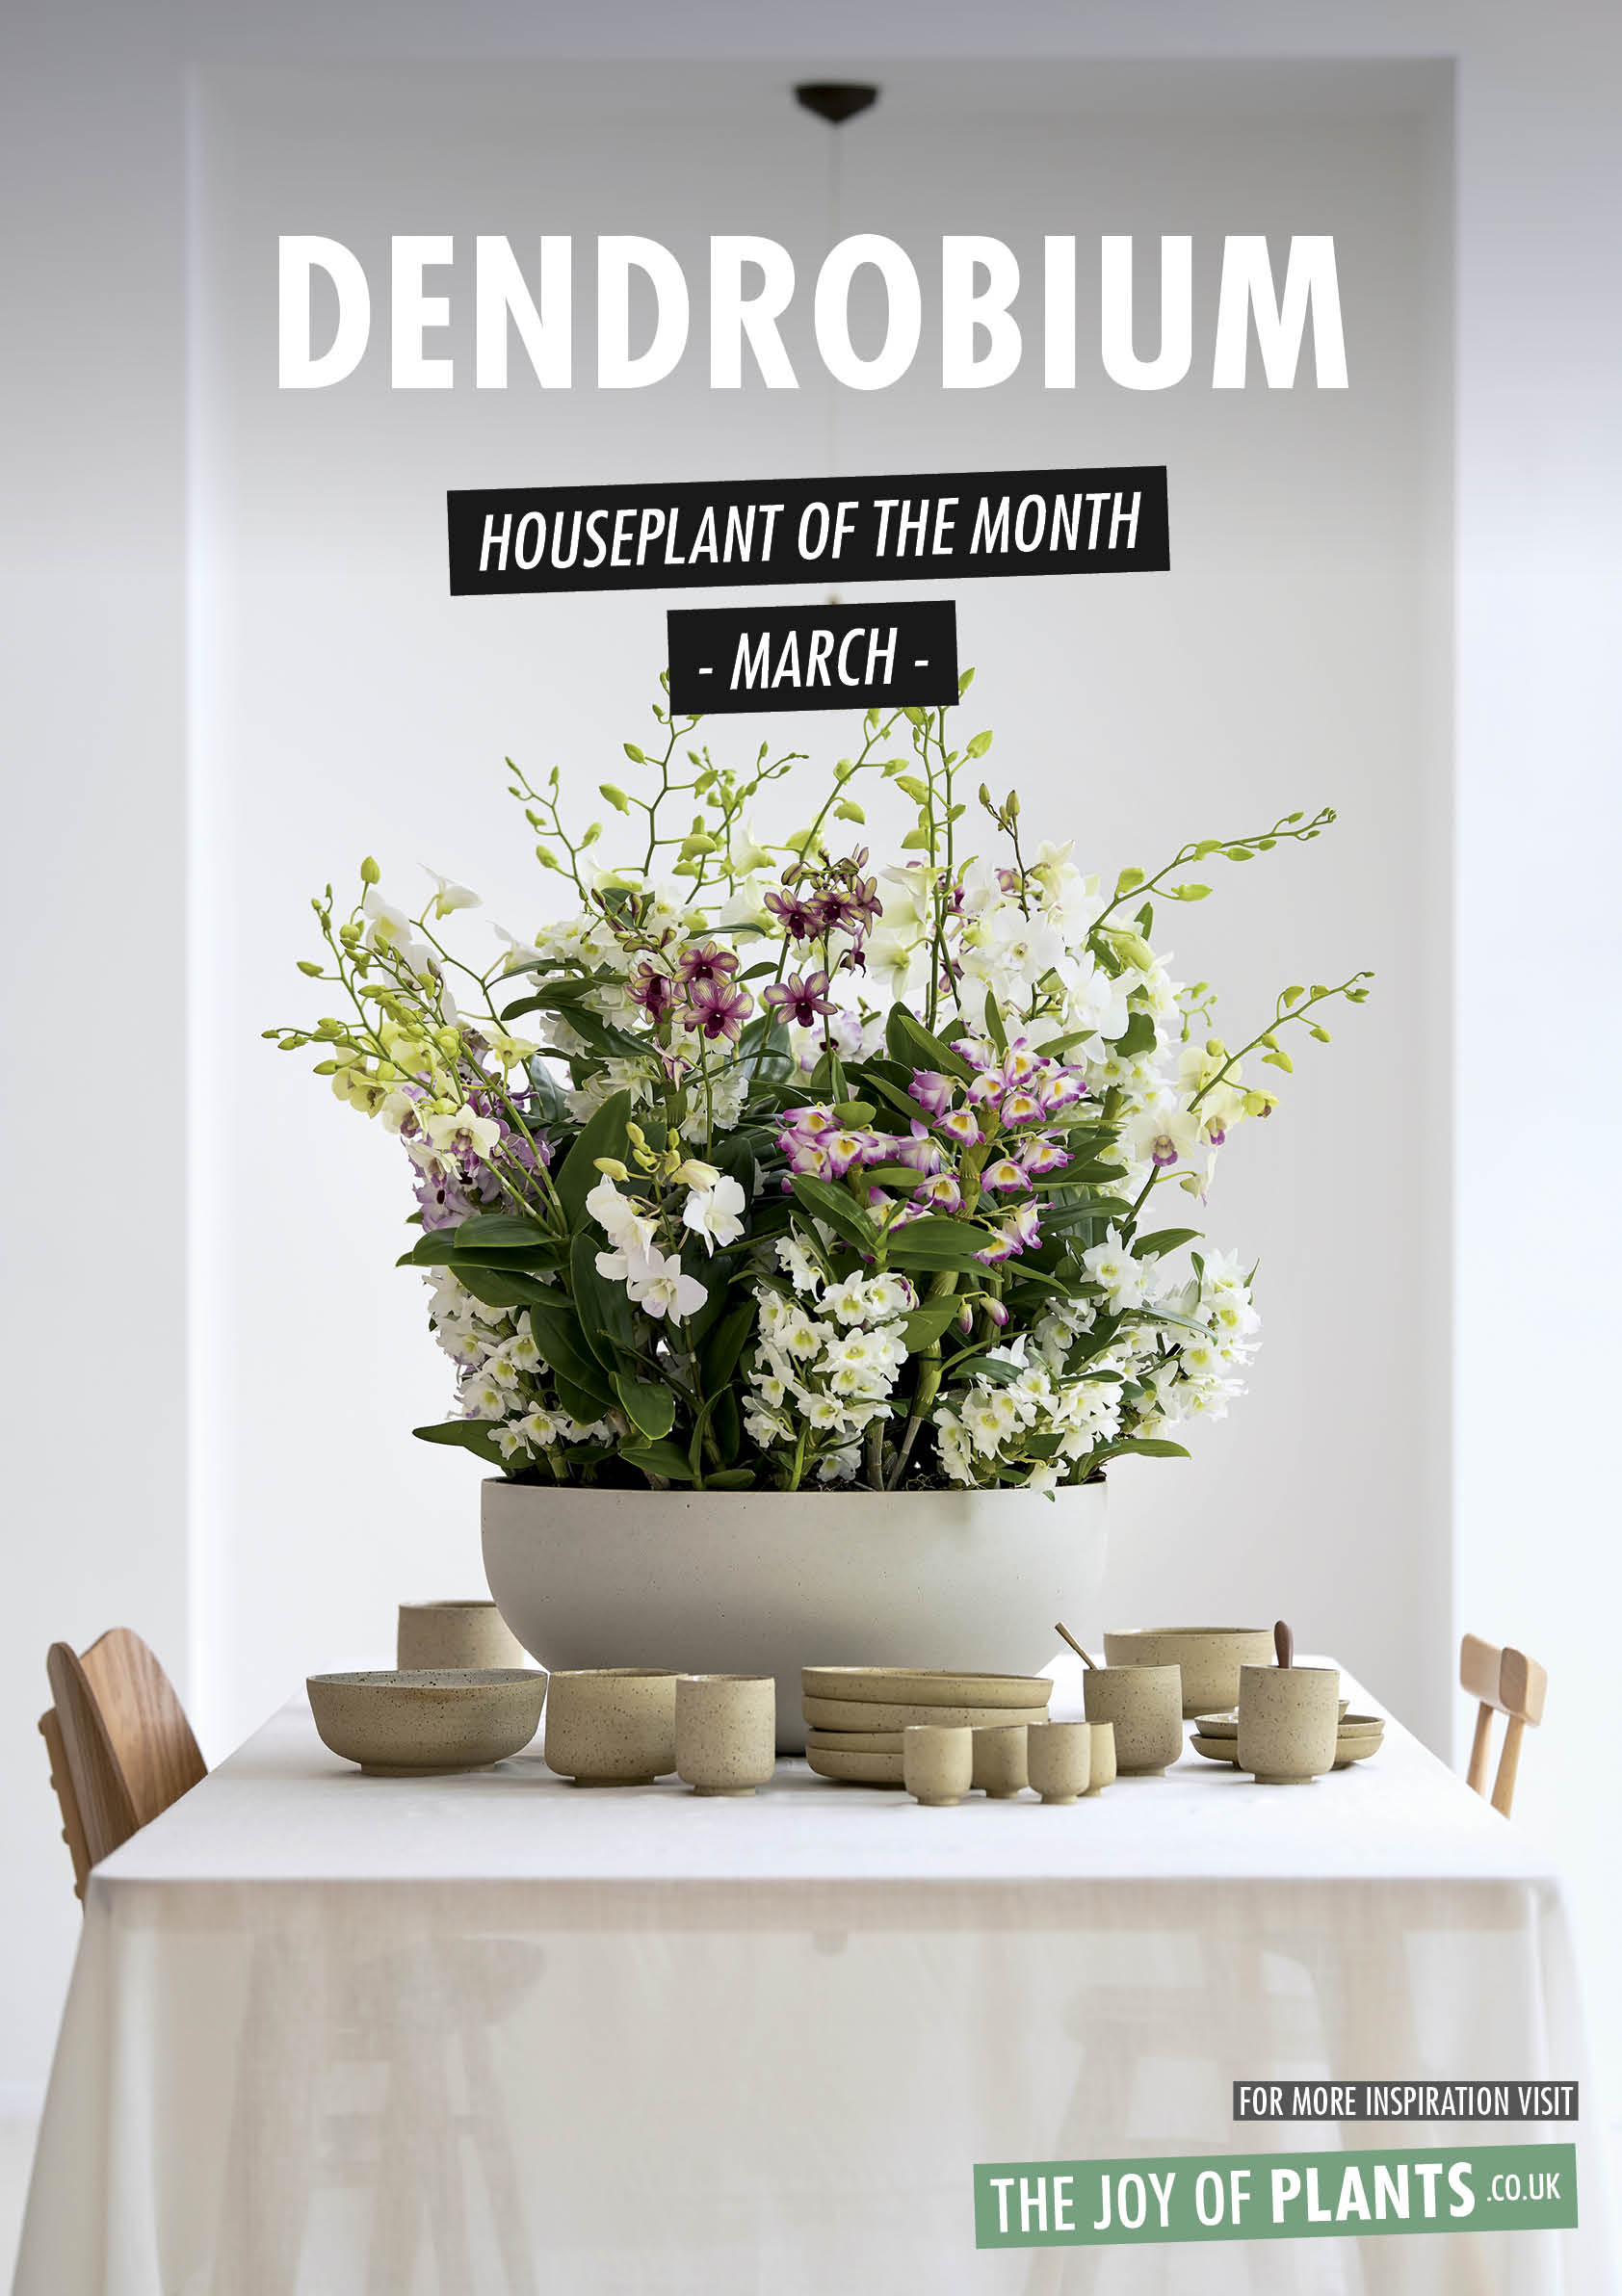 Dendrobium: Houseplant of the Month March 2020